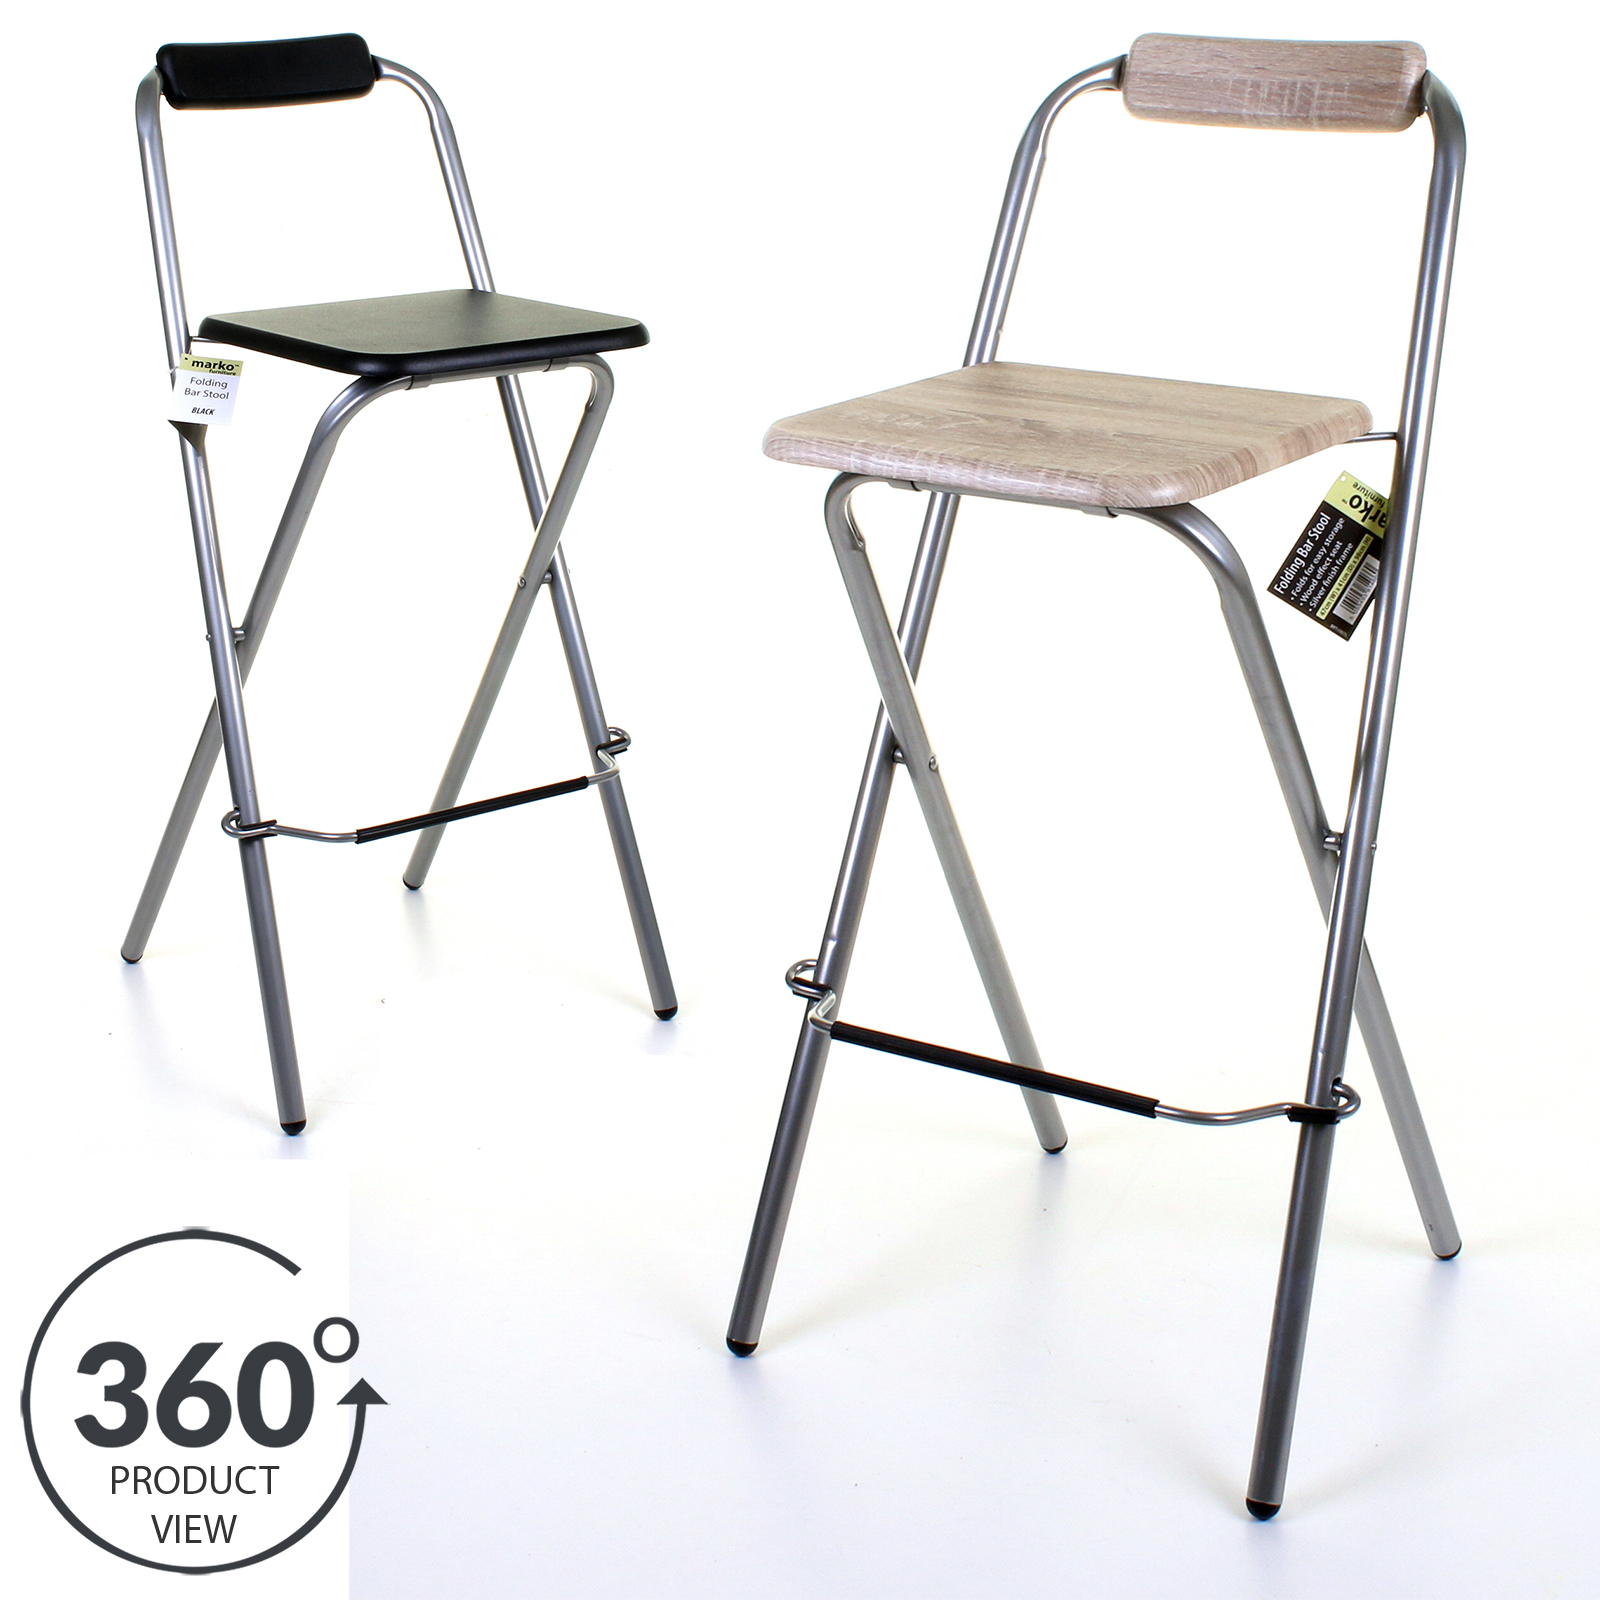 Details About Folding Wooden Bar Stool Chair Breakfast Kitchen Seating Silver Frame Seat Home